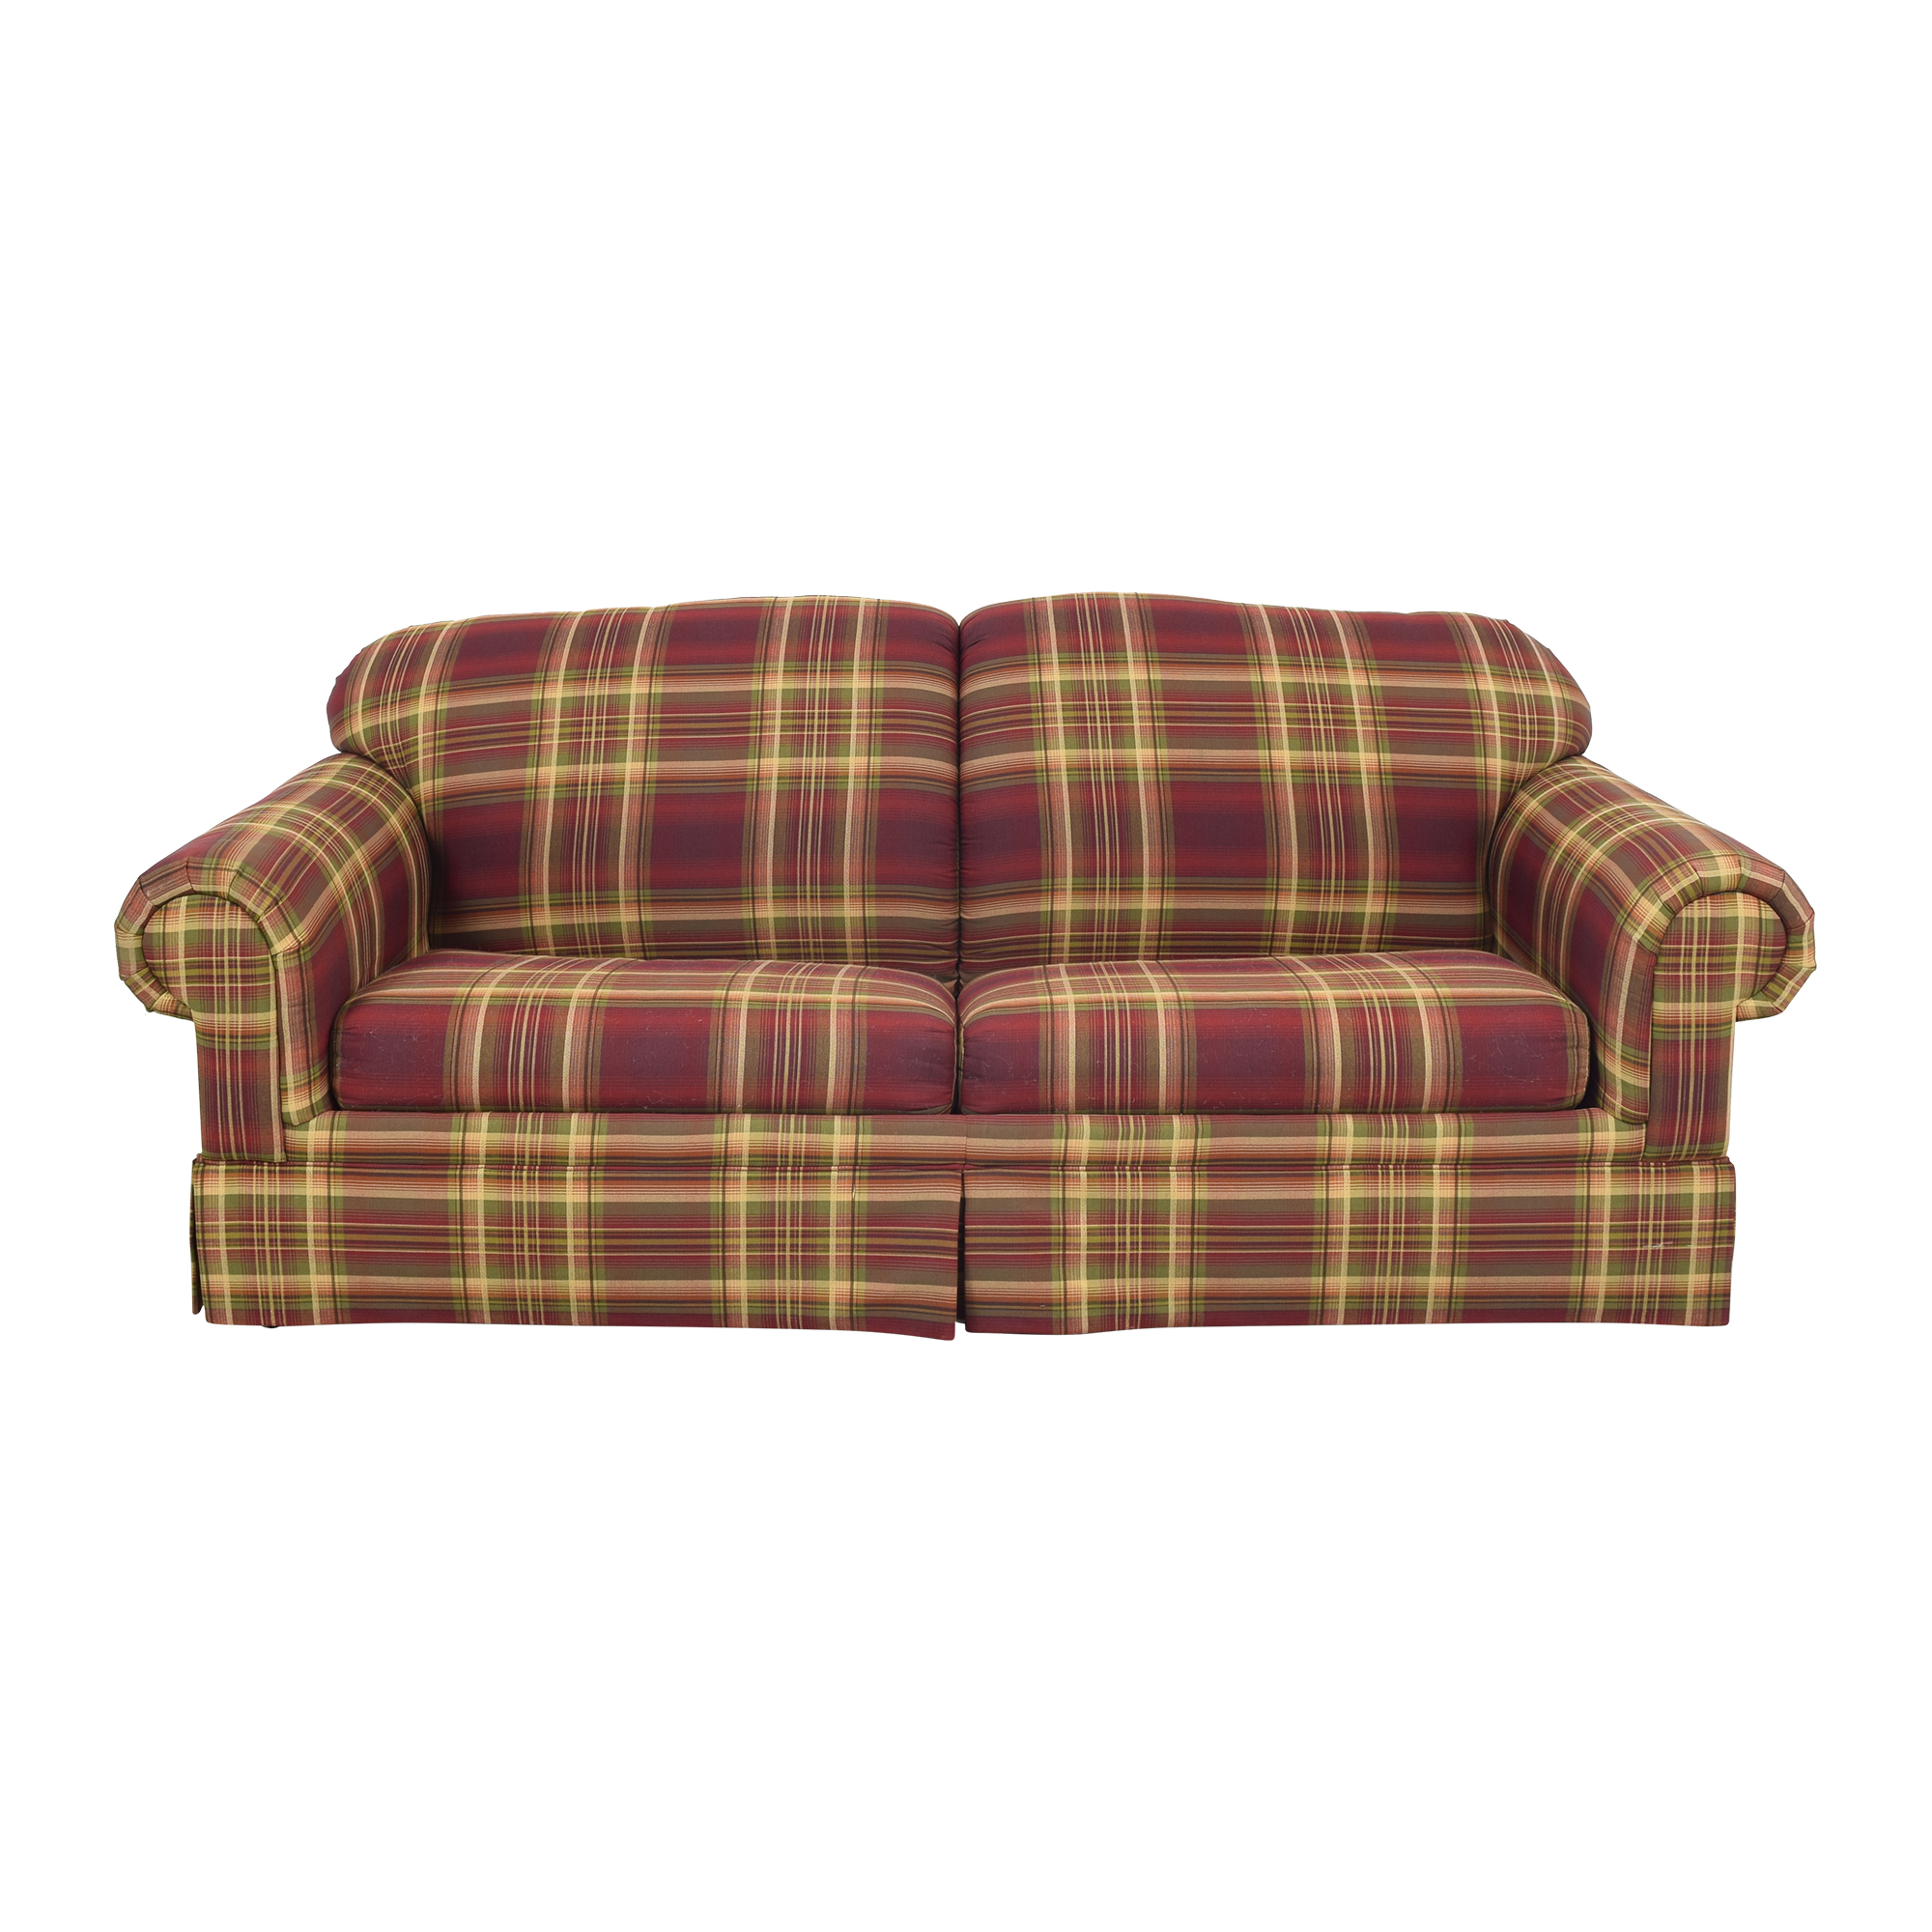 buy Rowe Furniture Rowe Two Seater Queen Sleeper Sofa online